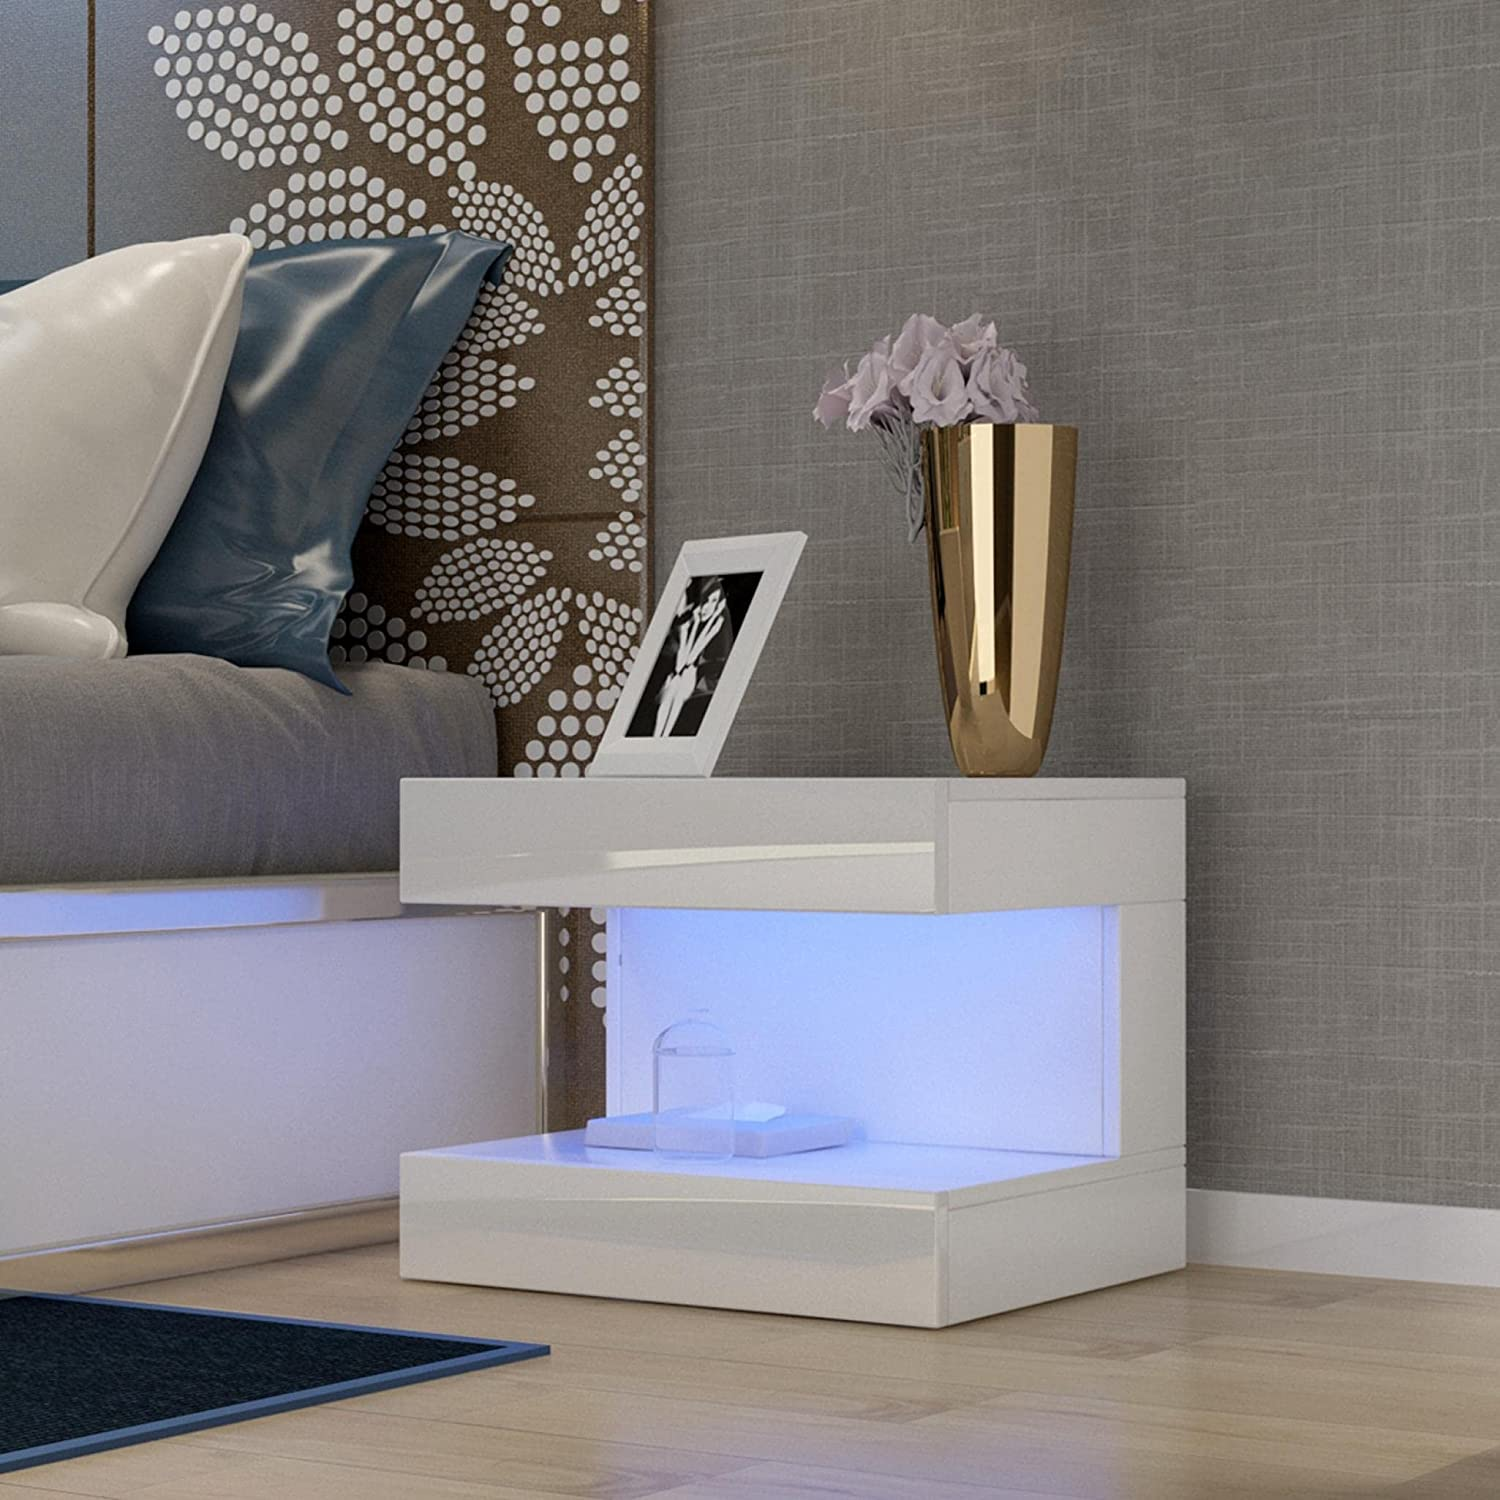 Decsix White High Gloss Nightstand Table Max OFFicial site 55% OFF Modern Nightsta Beside